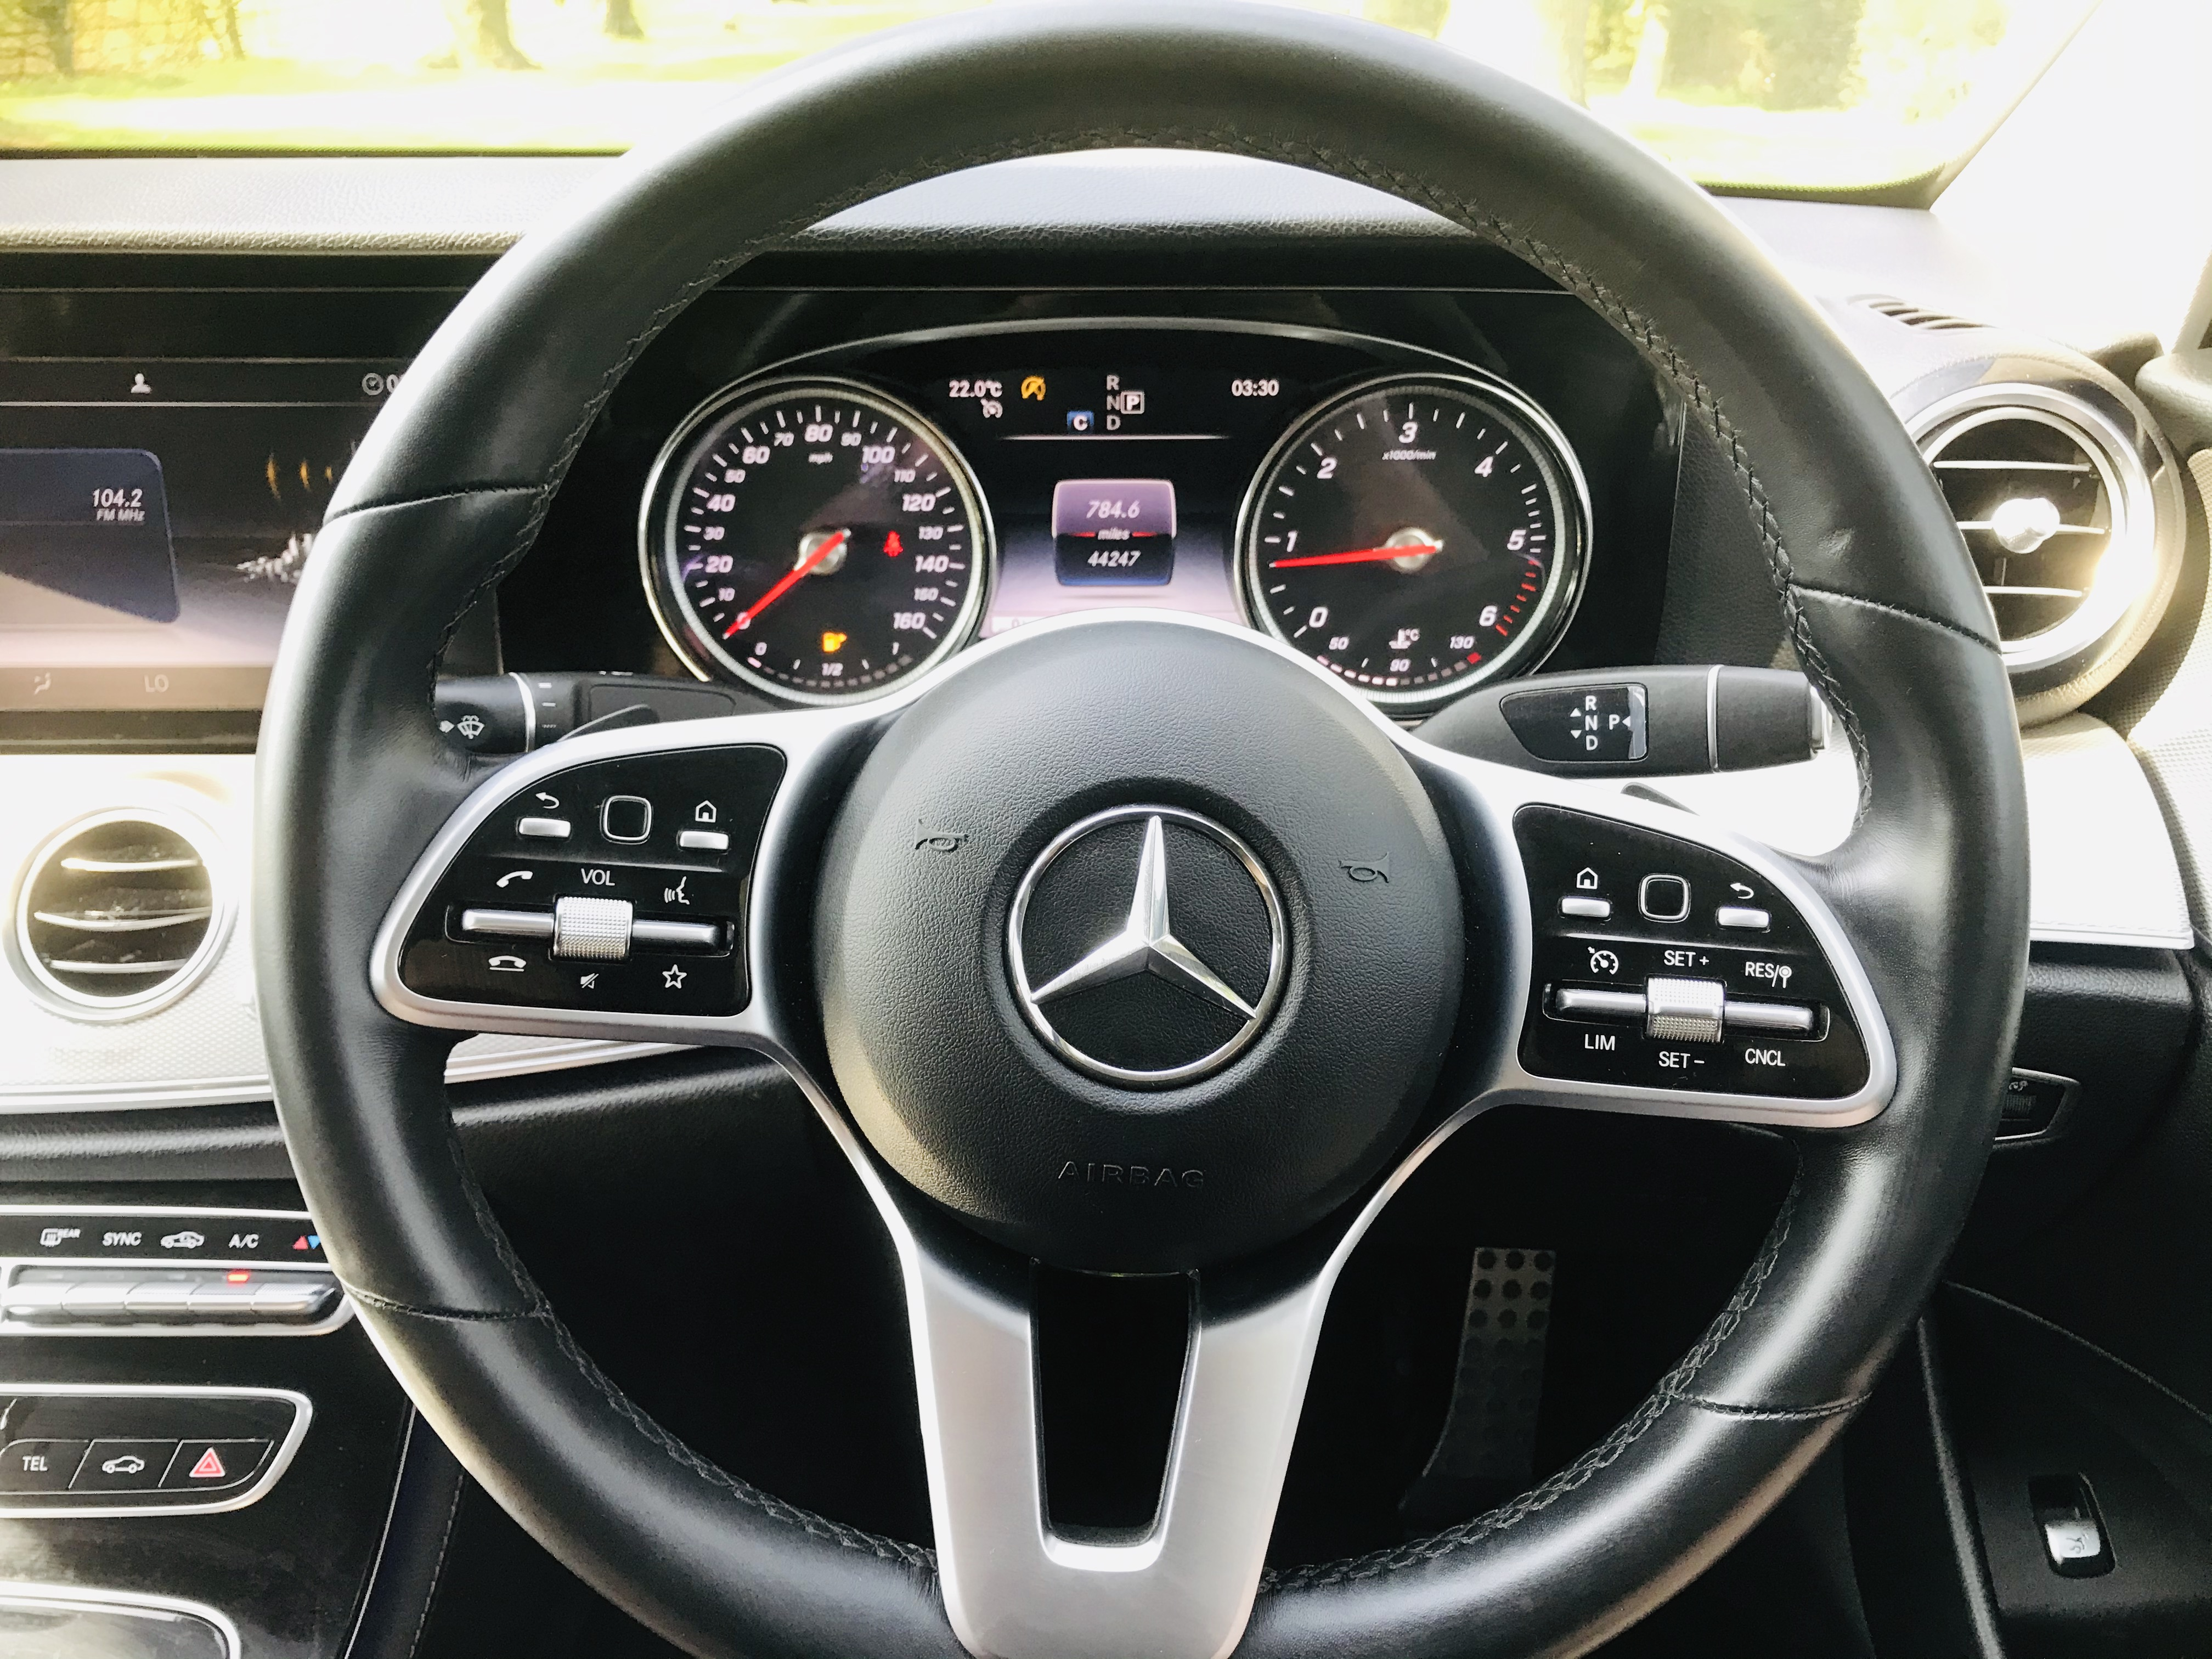 """On Sale MERCEDES E220d """"SPECIAL EQUIPMENT"""" 9G TRONIC (2019 MODEL) 1 OWNER - SAT NAV - LEATHER - WOW! - Image 16 of 26"""